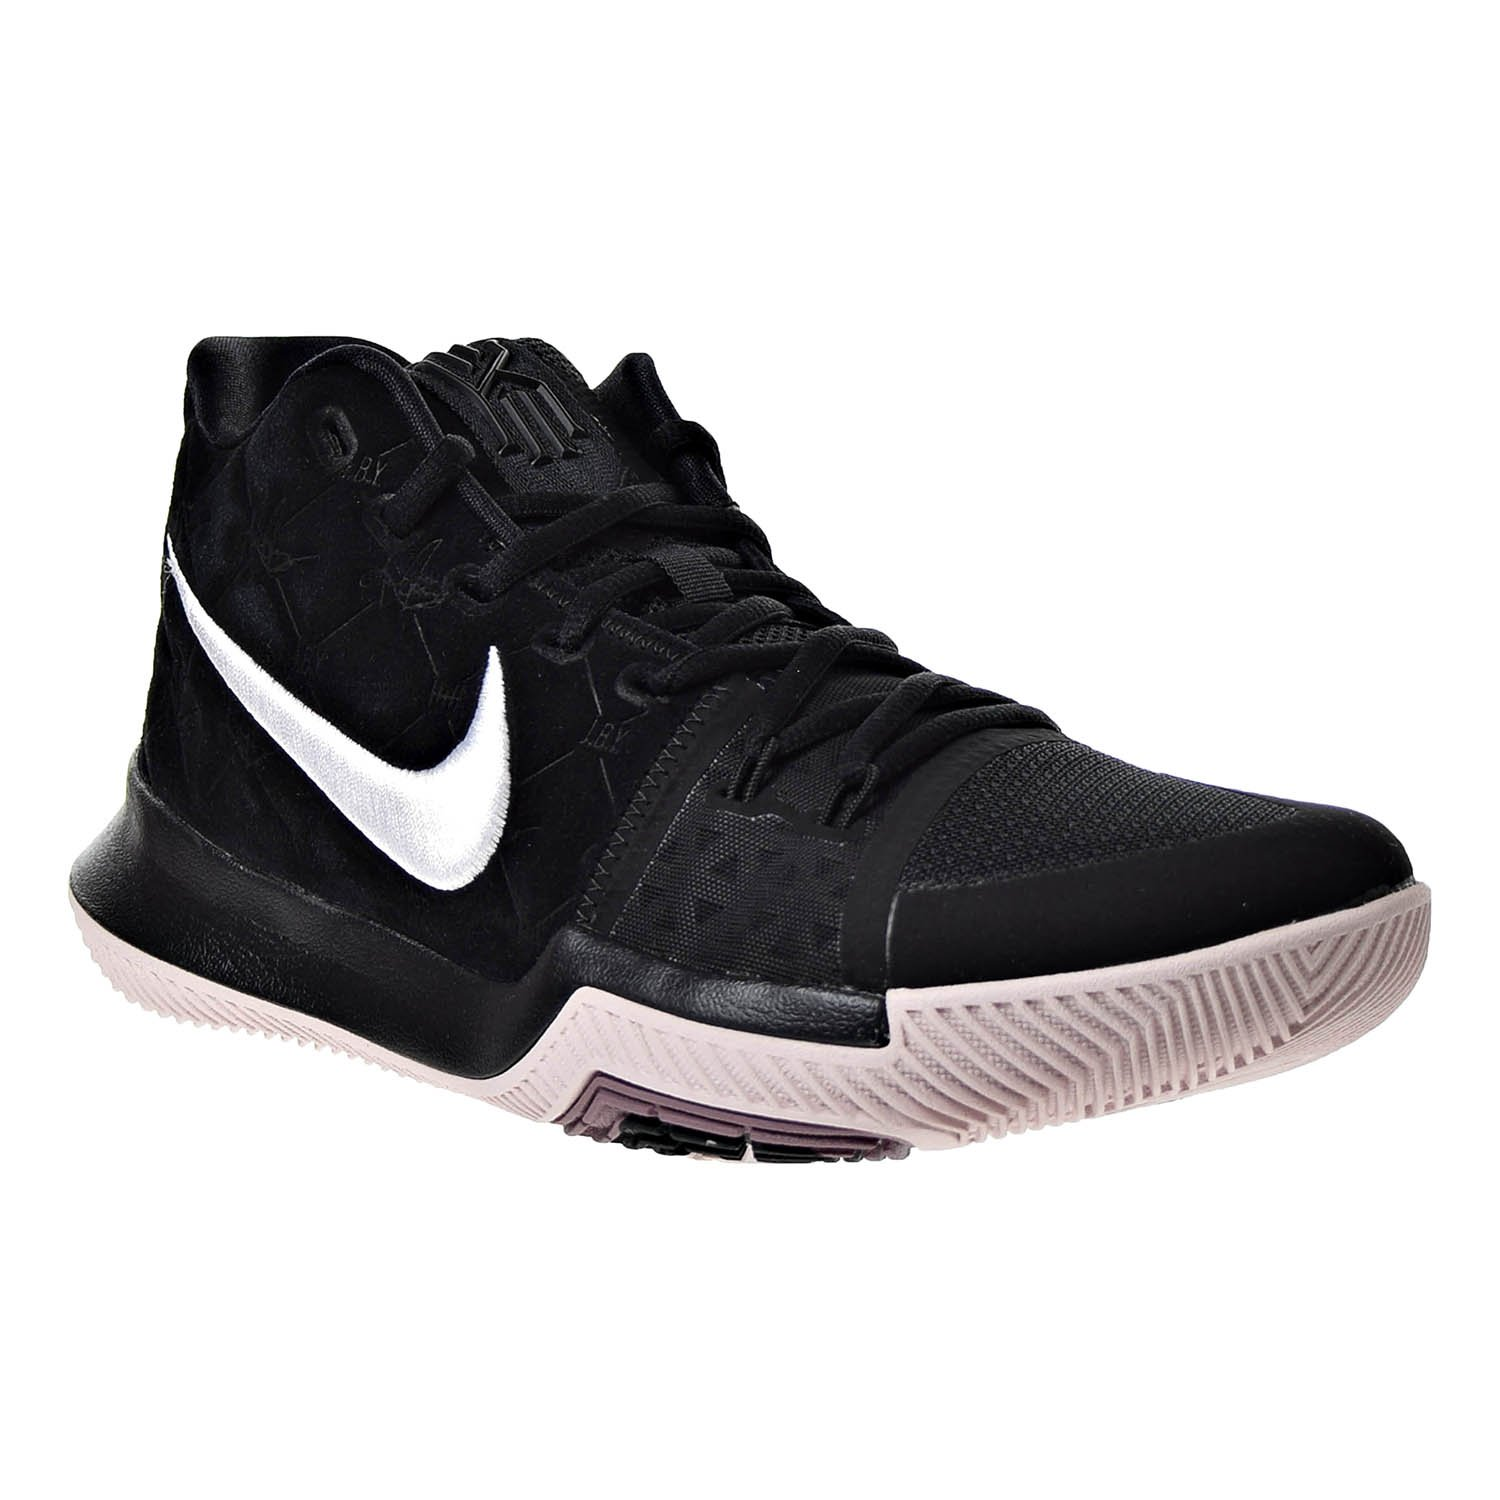 hot sale online c1bf6 5b8bb Amazon.com | Nike Kyrie 3 Basketball Men's Shoes Size | Basketball